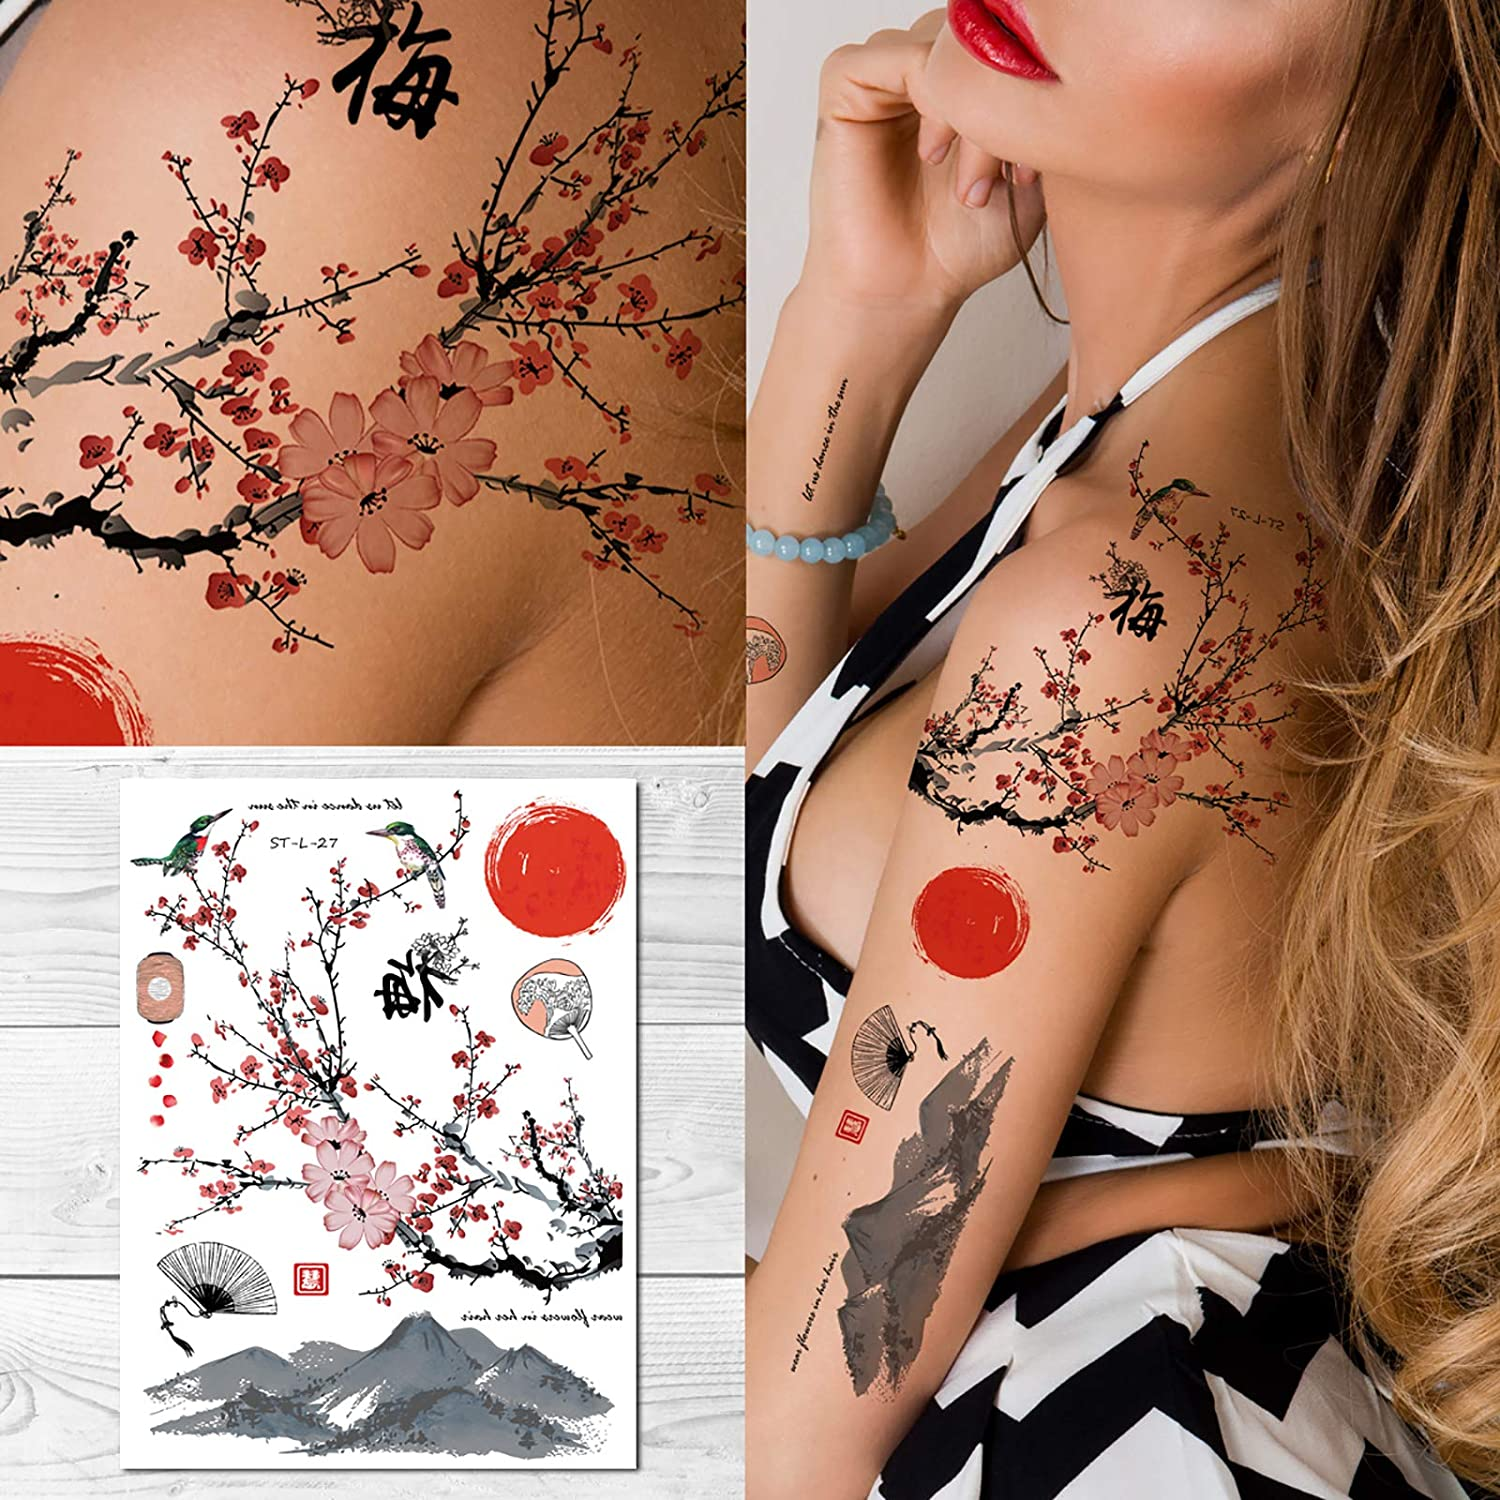 Supperb Temporary Tattoos - Plum Max 52% OFF Factory outlet Dance sun the Blossom in